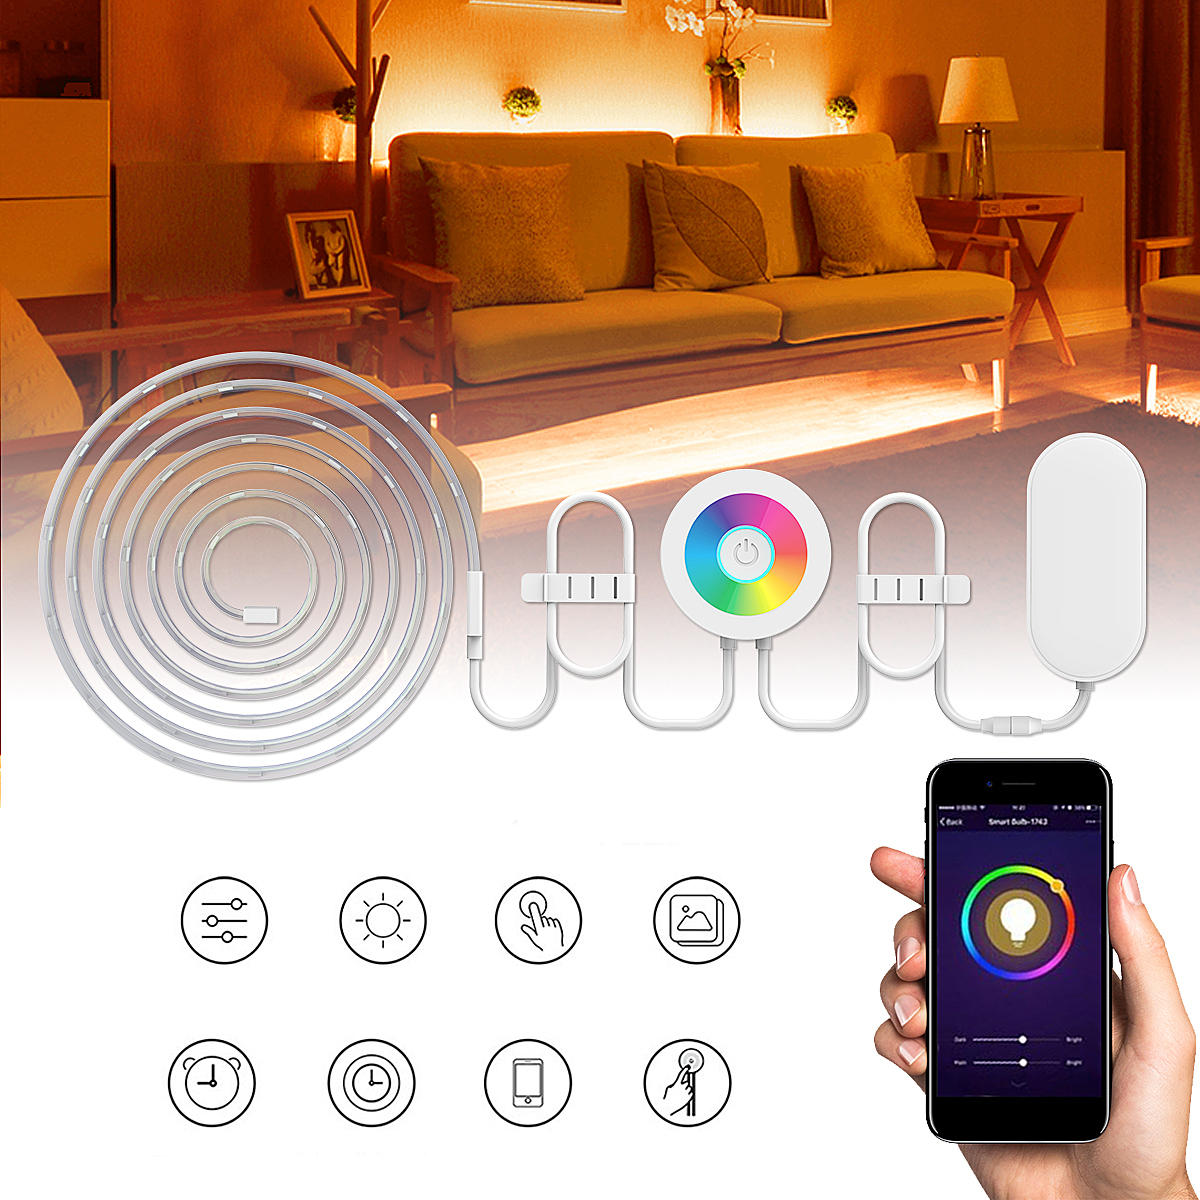 Led Strip Waterproof 2m Waterproof Smd5050 Rgb Smart Wifi Led Strip Light Work With Alexa Echo Voice Control Dc12v